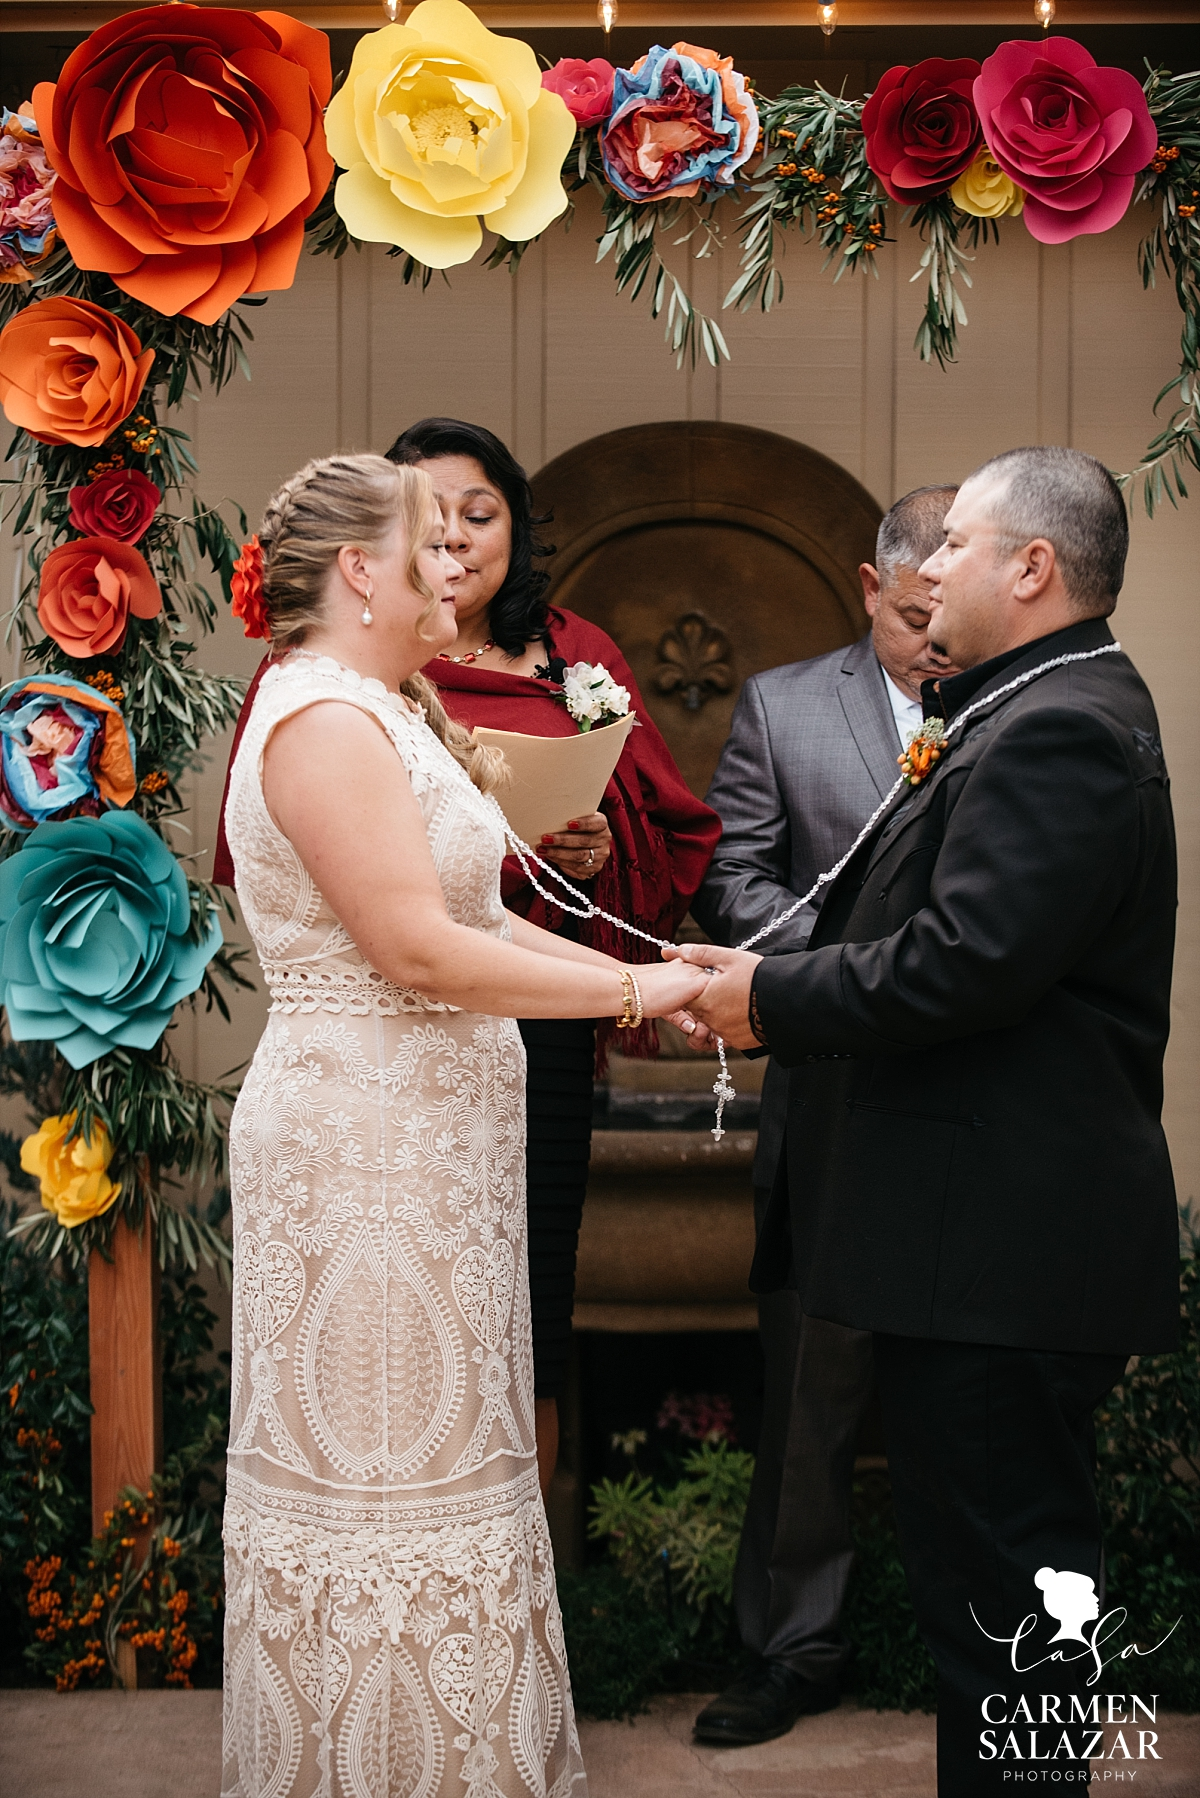 Mexican Catholic backyard wedding ceremony - Carmen Salazar